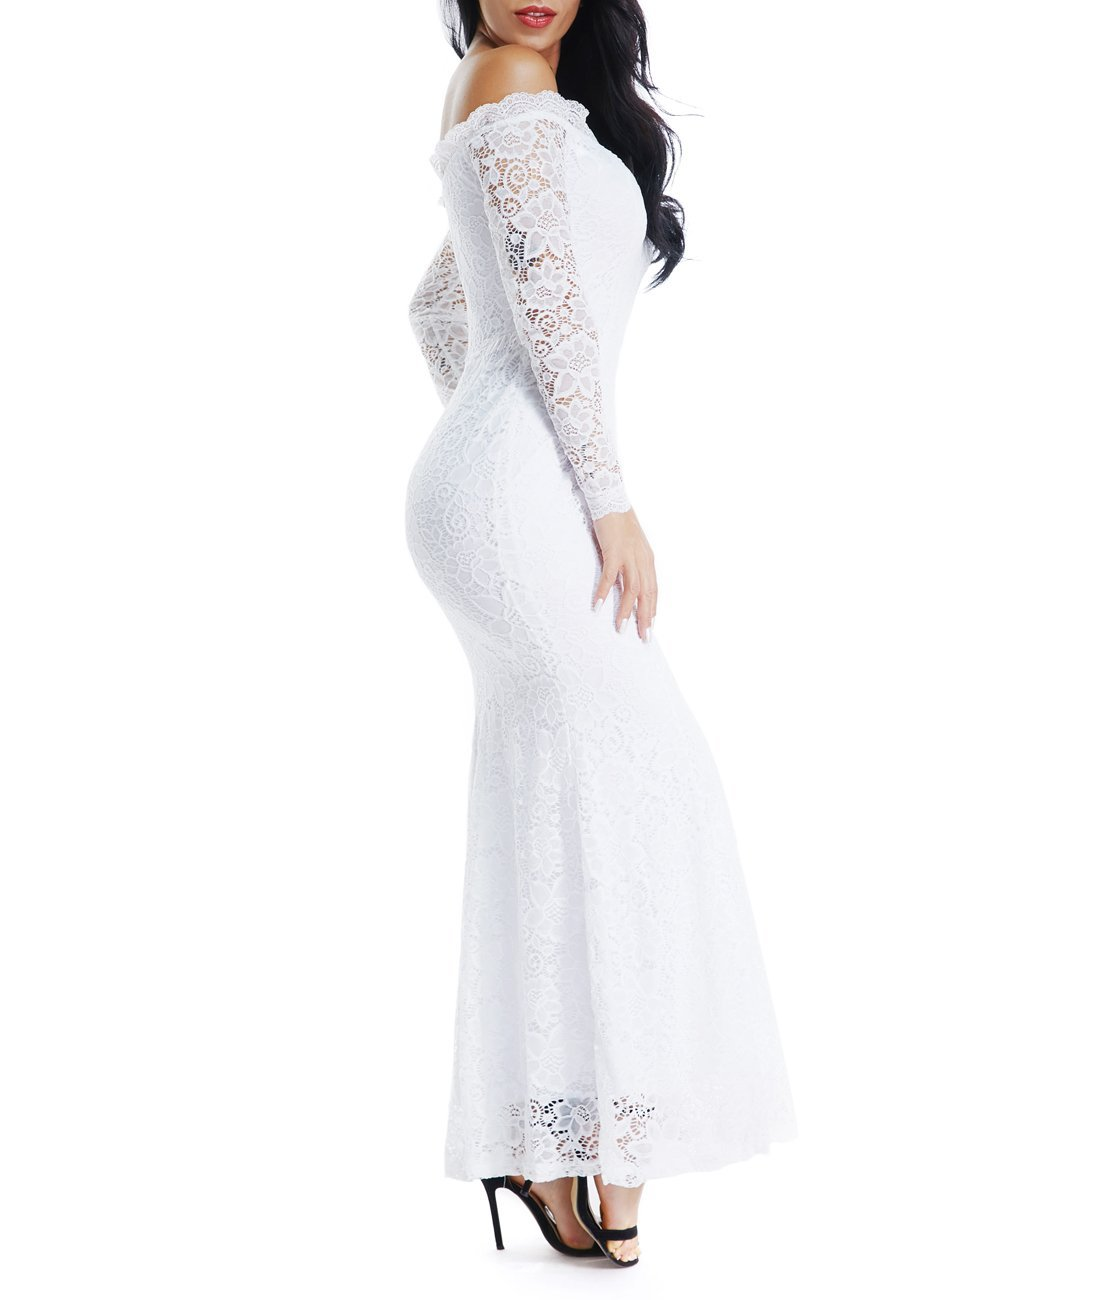 Lalagen Women's Floral Lace Long Sleeve Off Shoulder Wedding Mermaid Dress White1 S by Lalagen (Image #3)